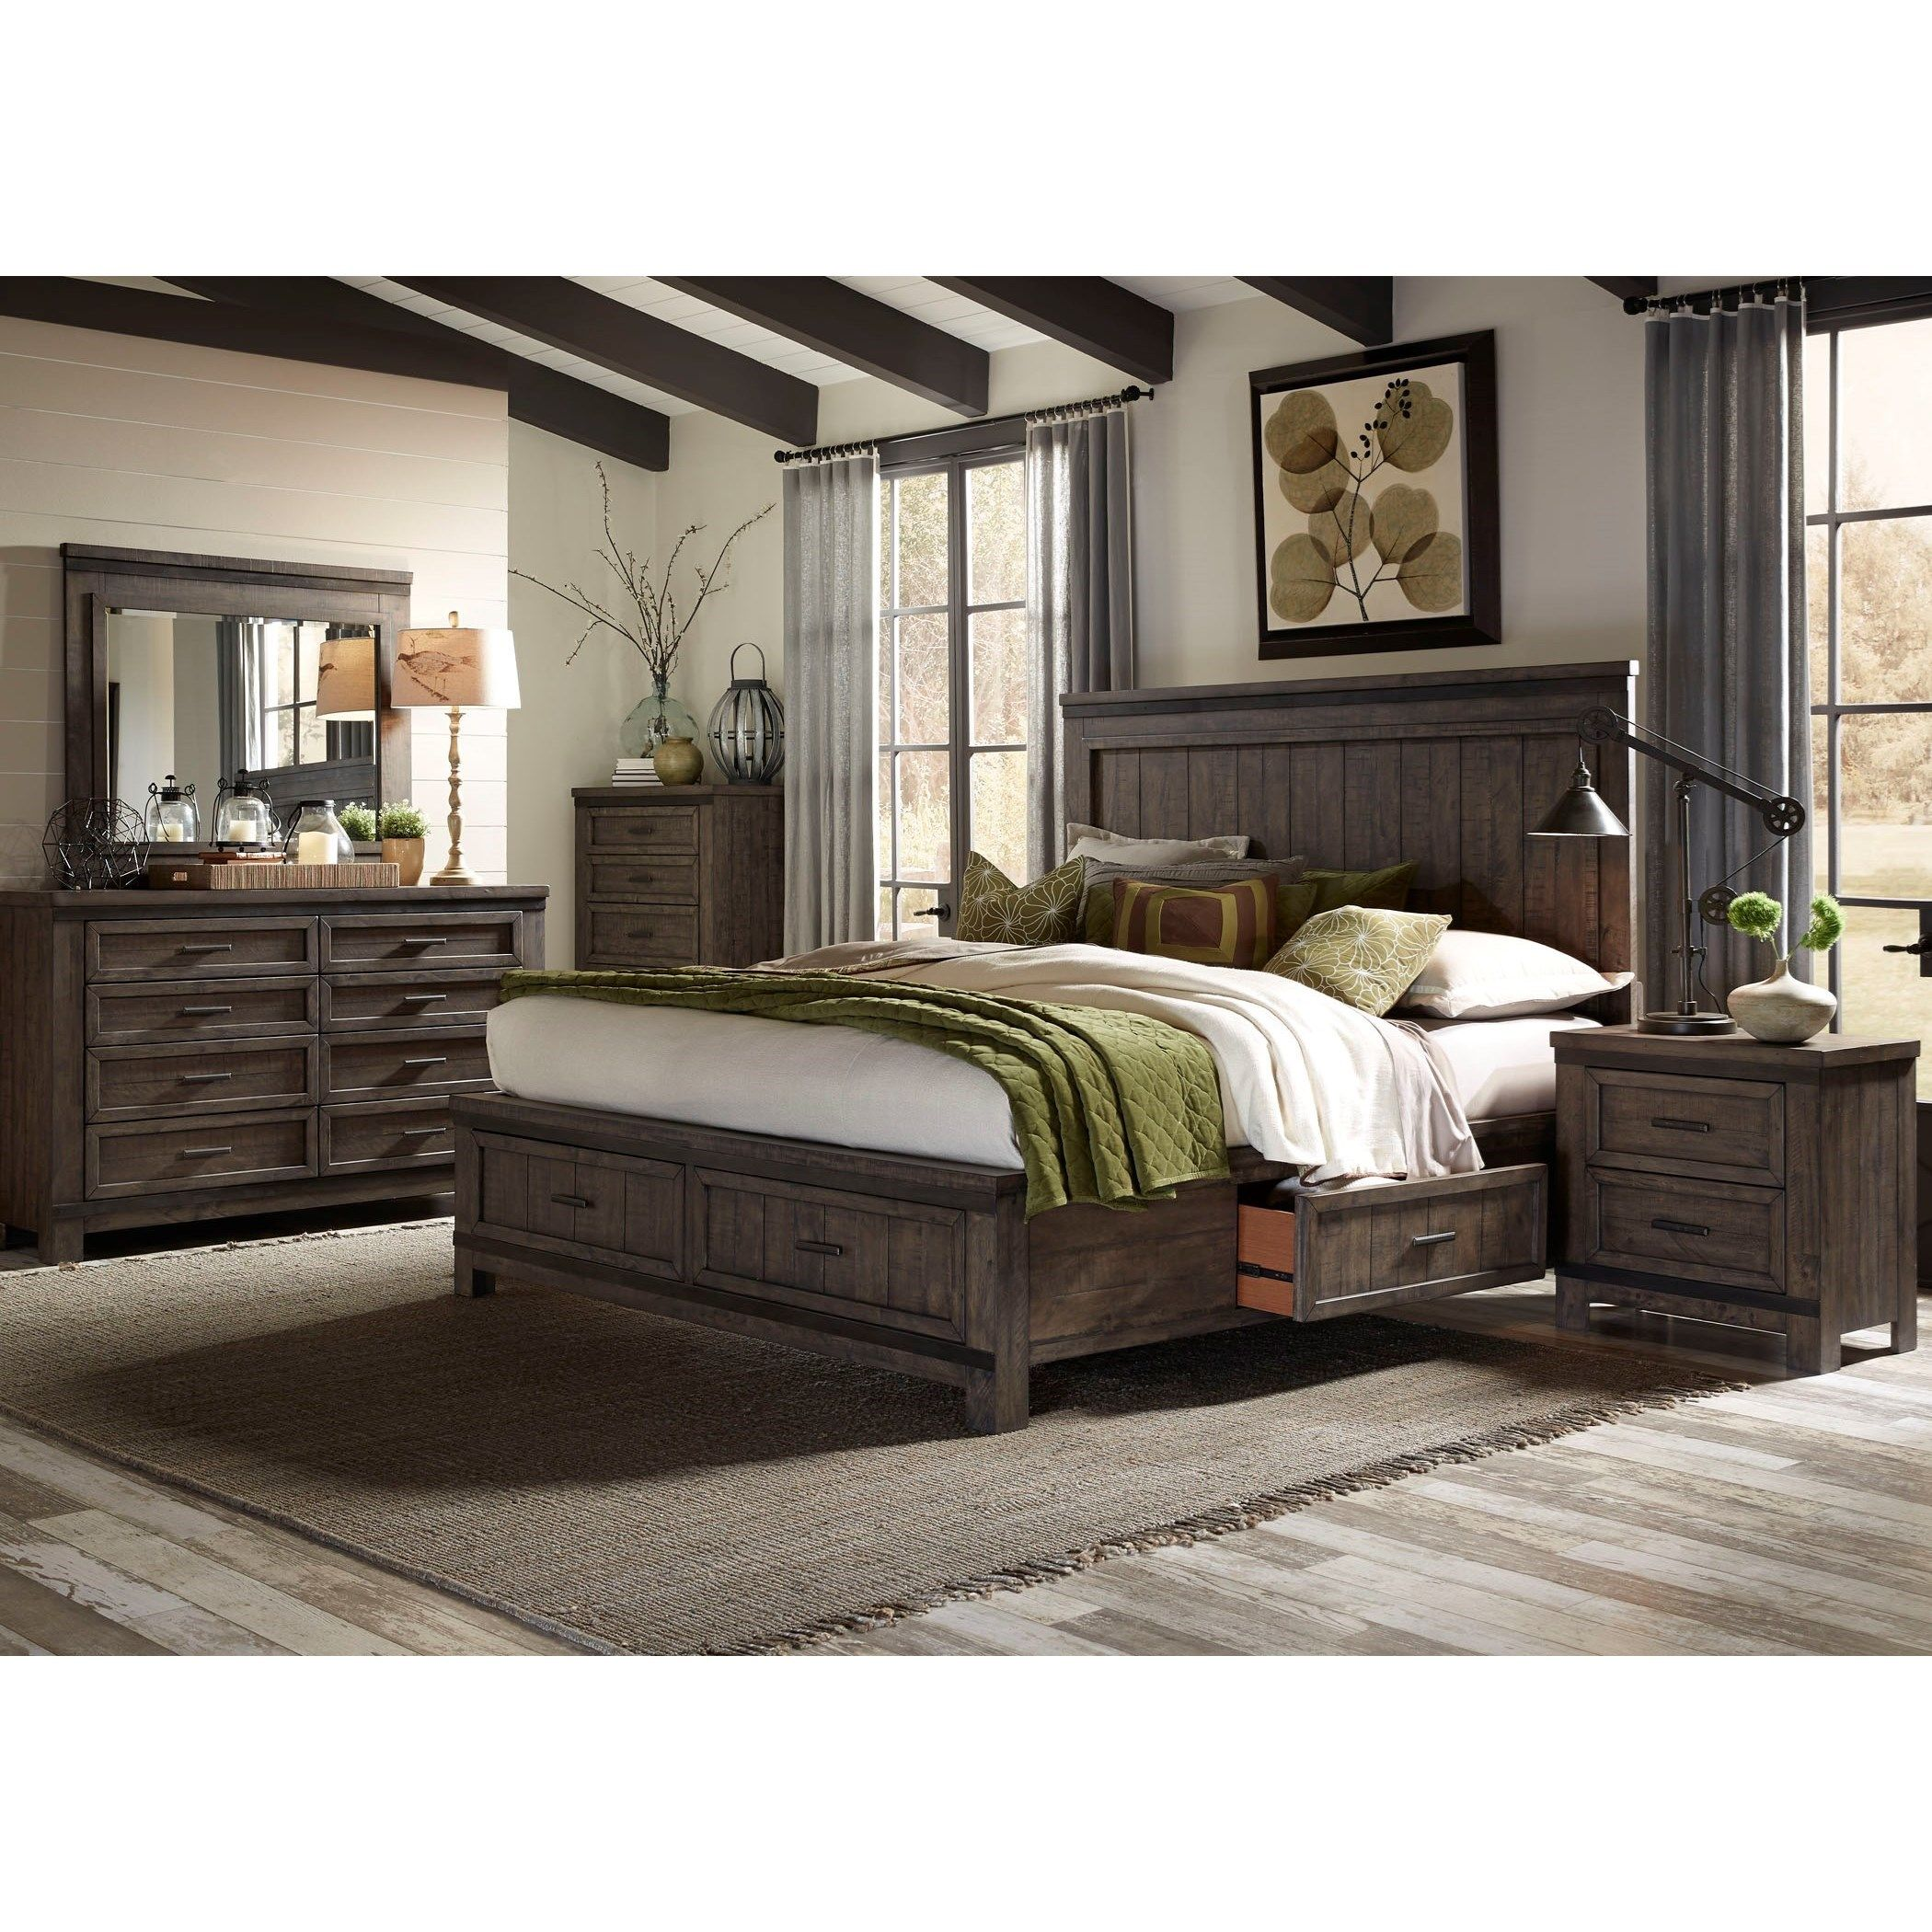 Thornwood Hills Queen Bedroom Group by Liberty Furniture